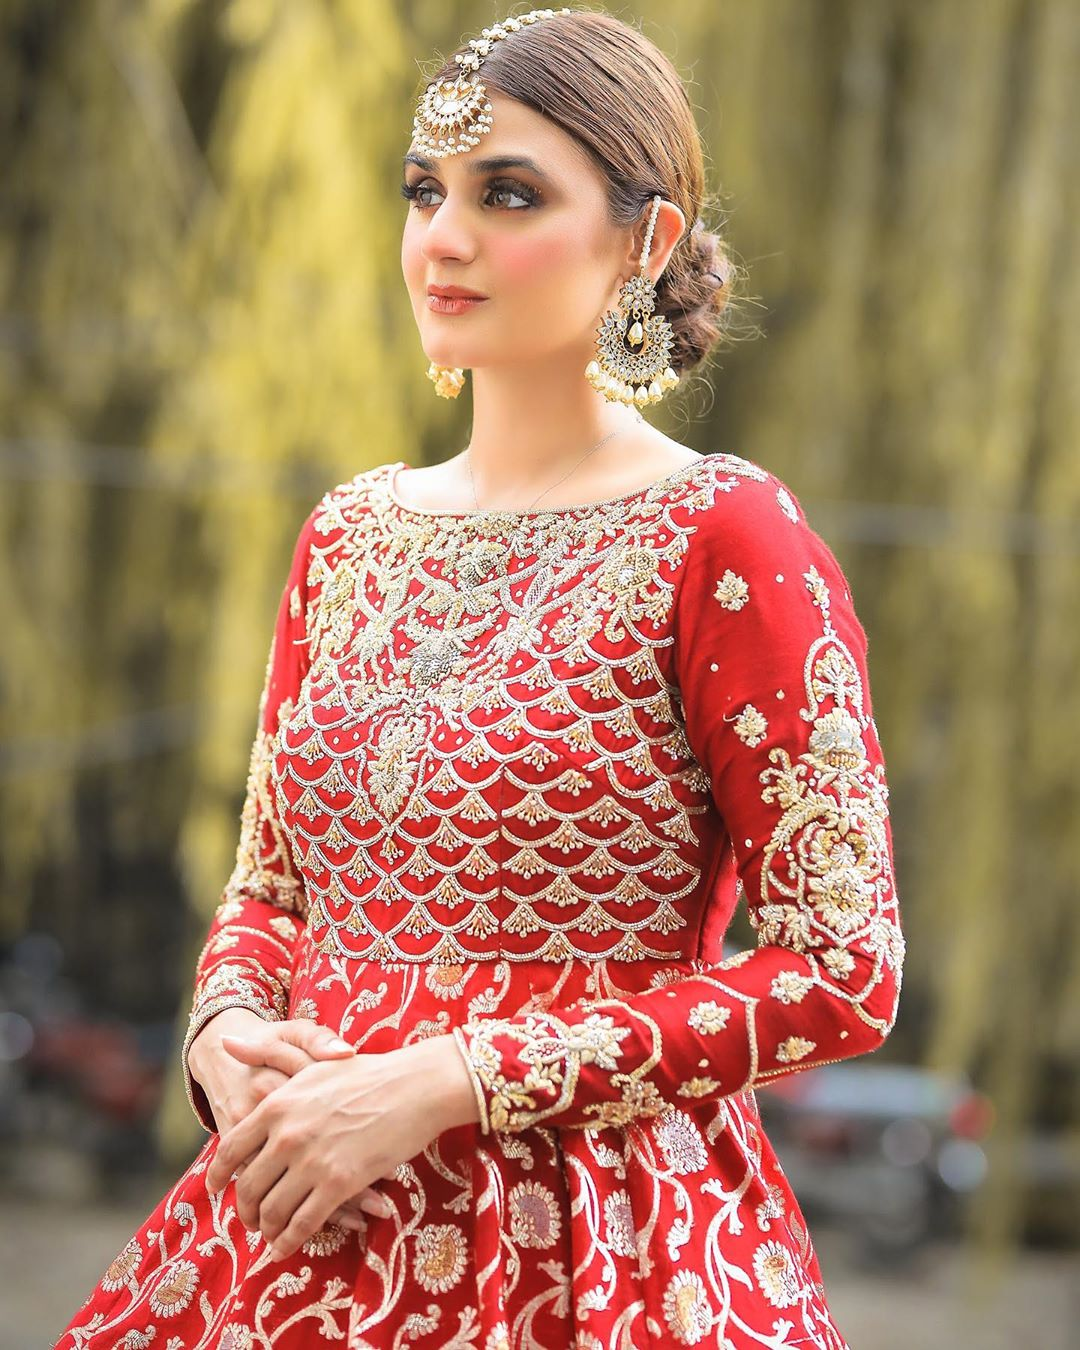 Hira Mani is Looking Stunning in her Recent Shoot for Karismash by Ahson Shoaib